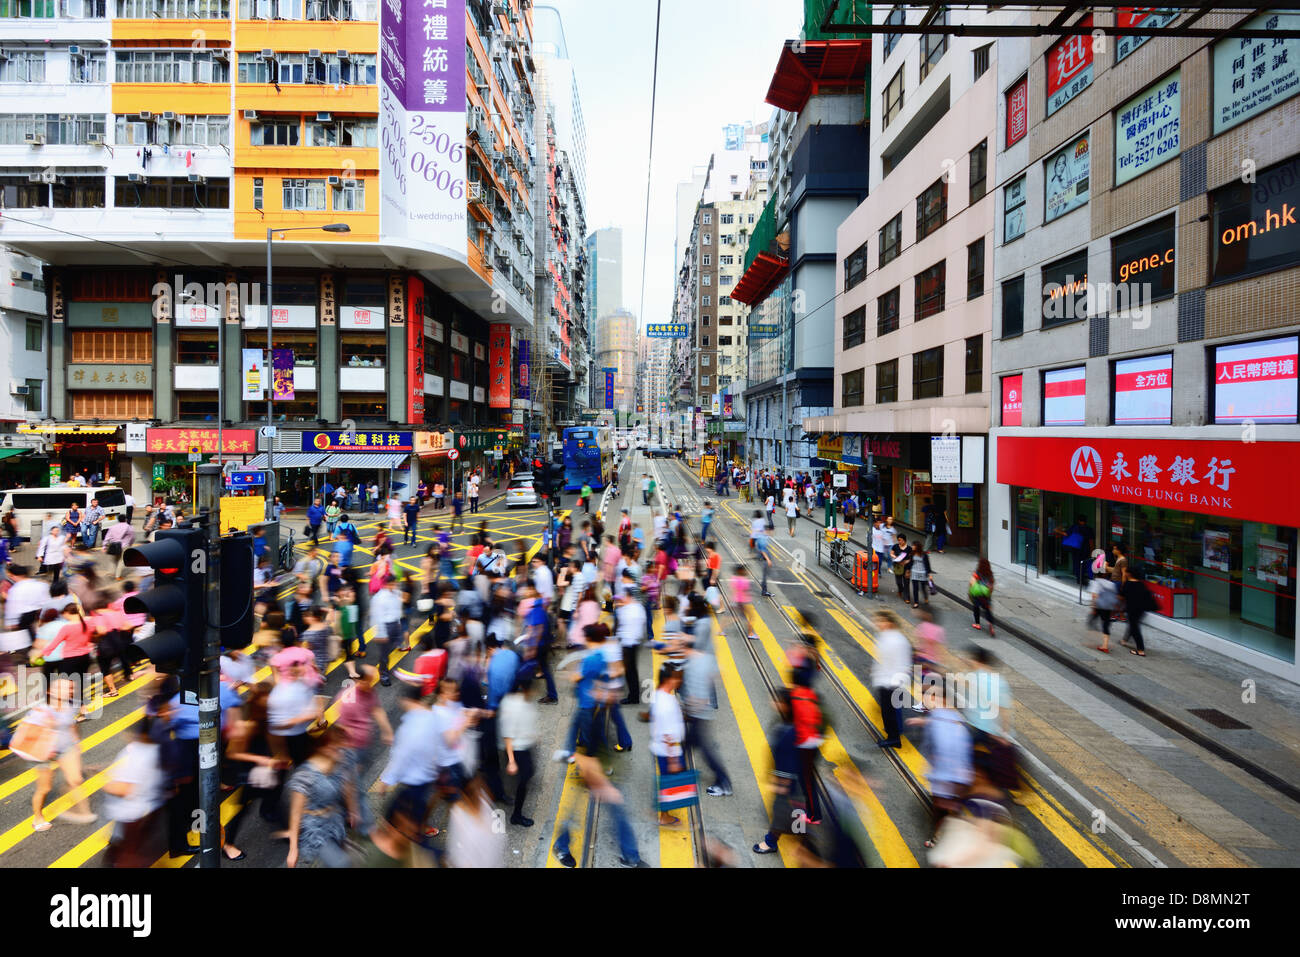 Pedestrians at a Hong Kong crosswalk - Stock Image